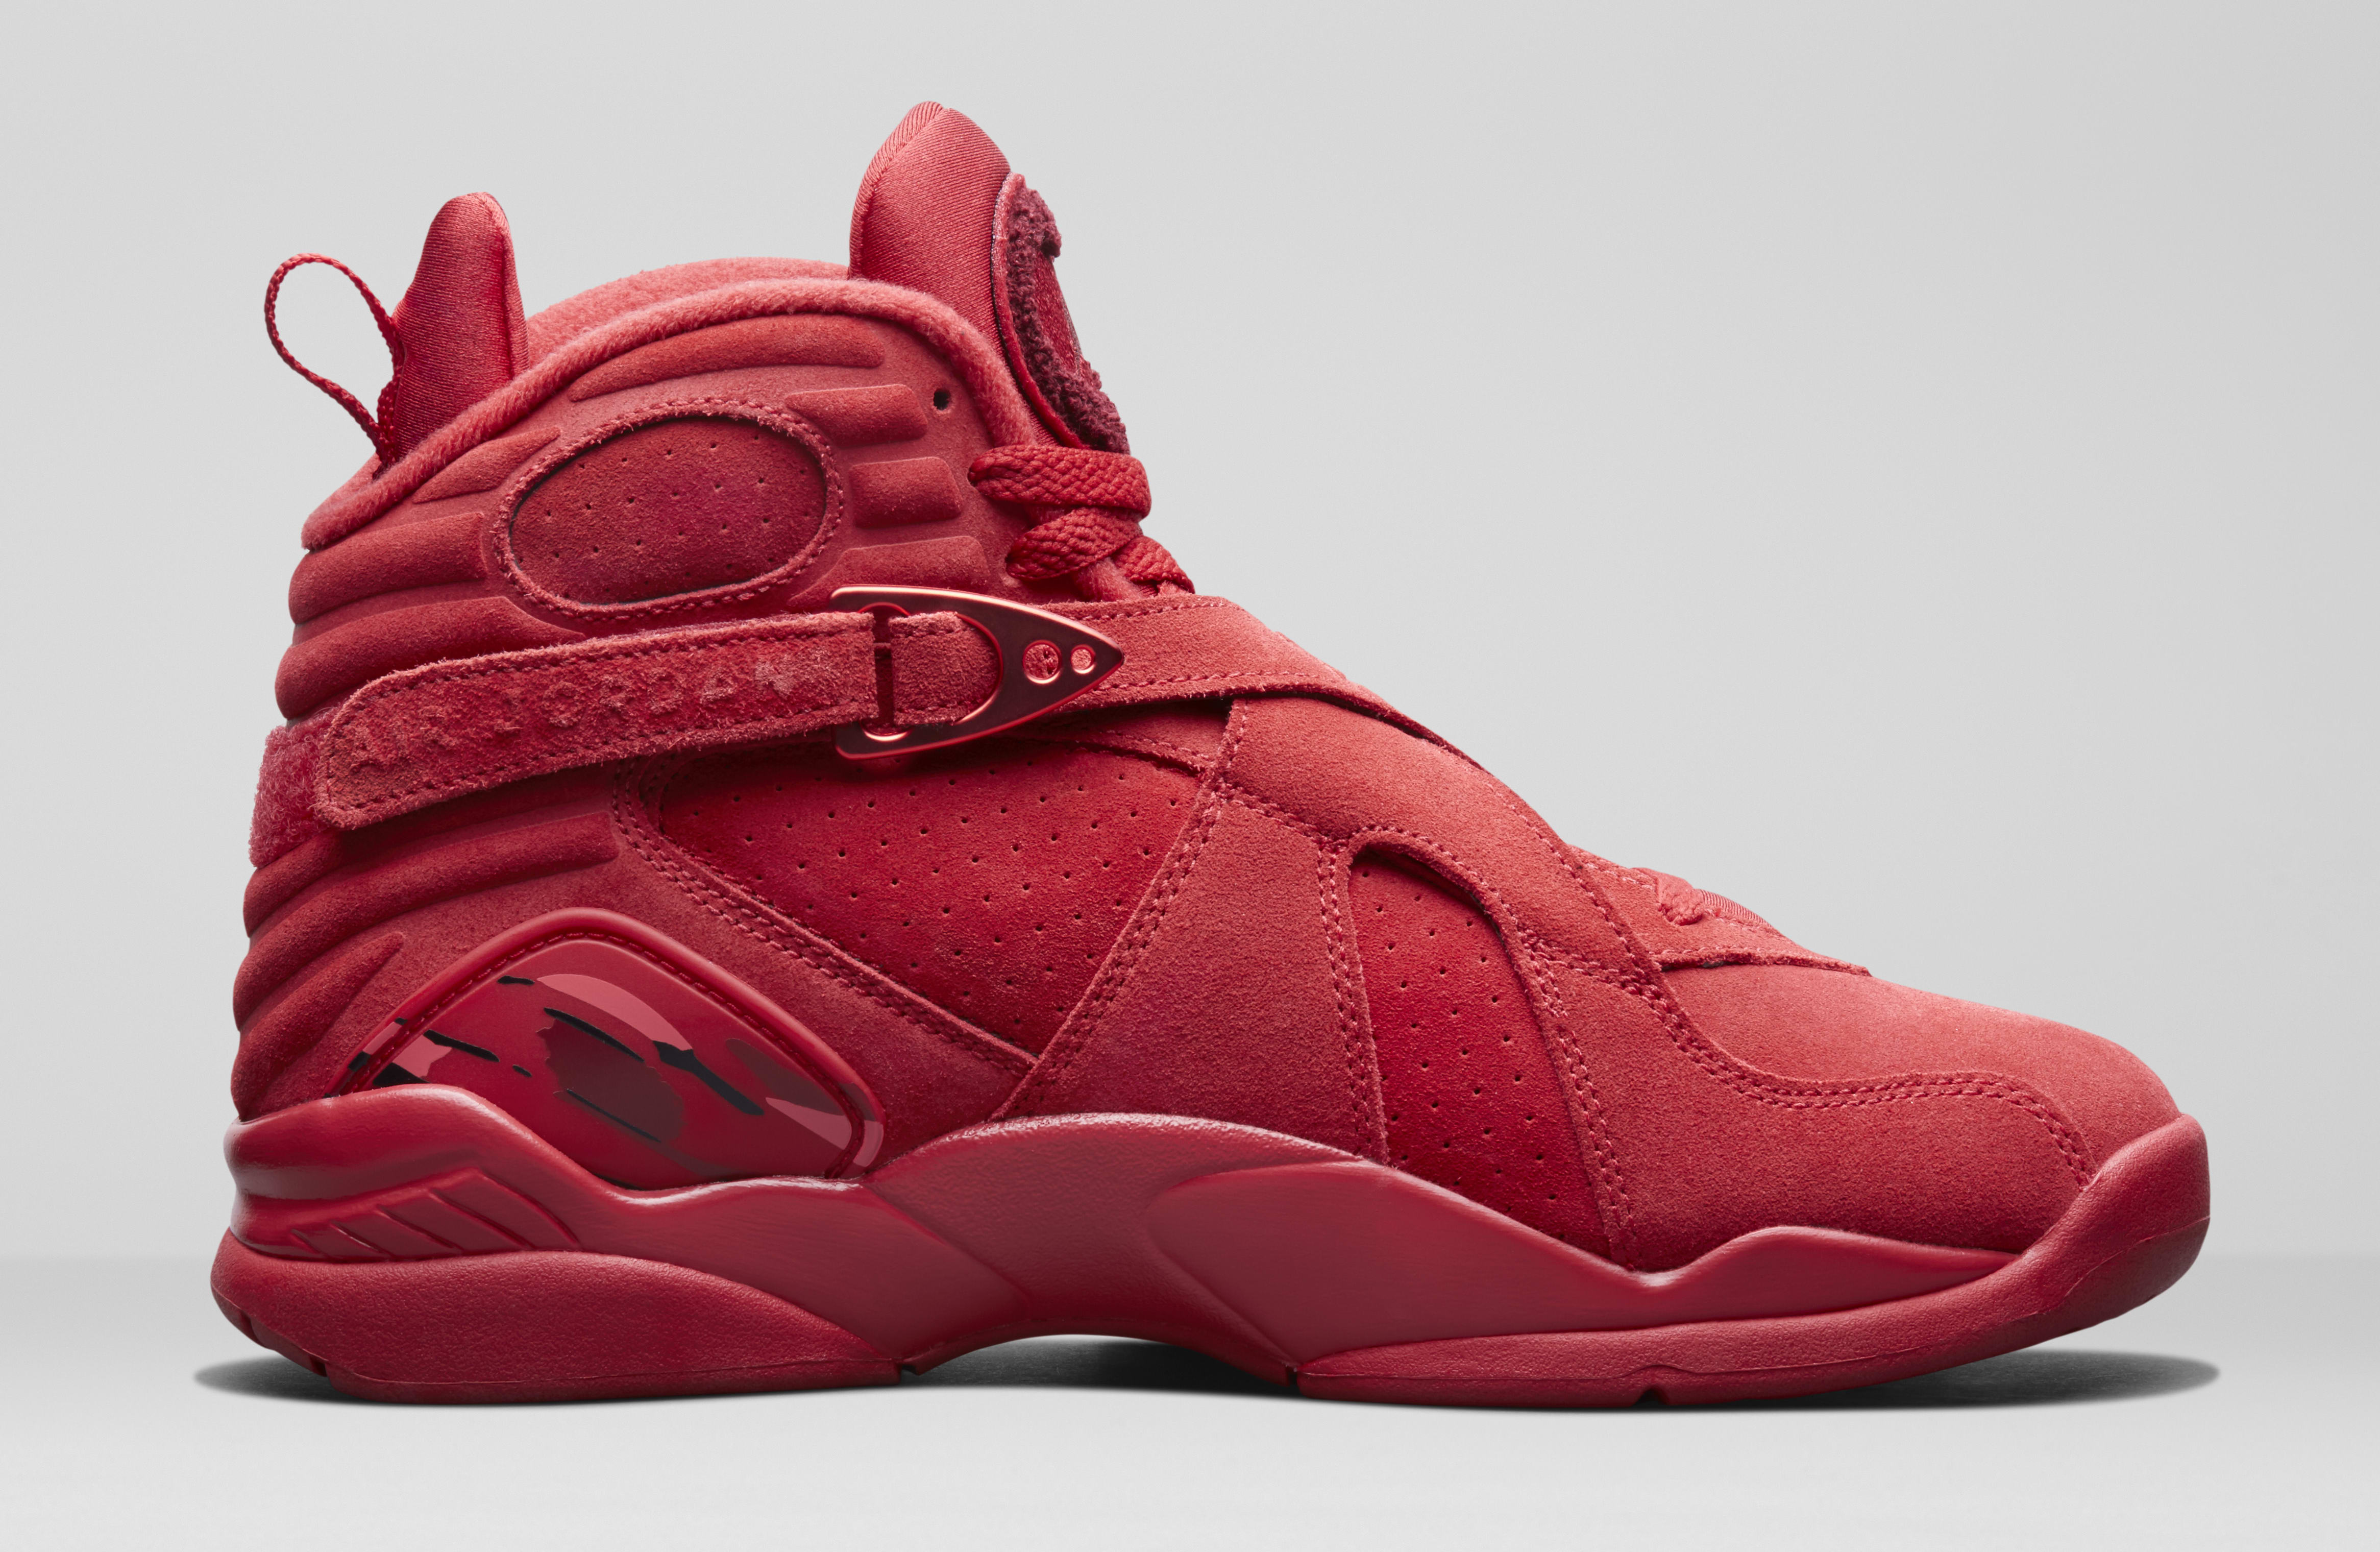 uk availability aad68 d6f2b WMNS Air Jordan 8 'Valentine's Day' Gym Red/Ember Glow-Team ...